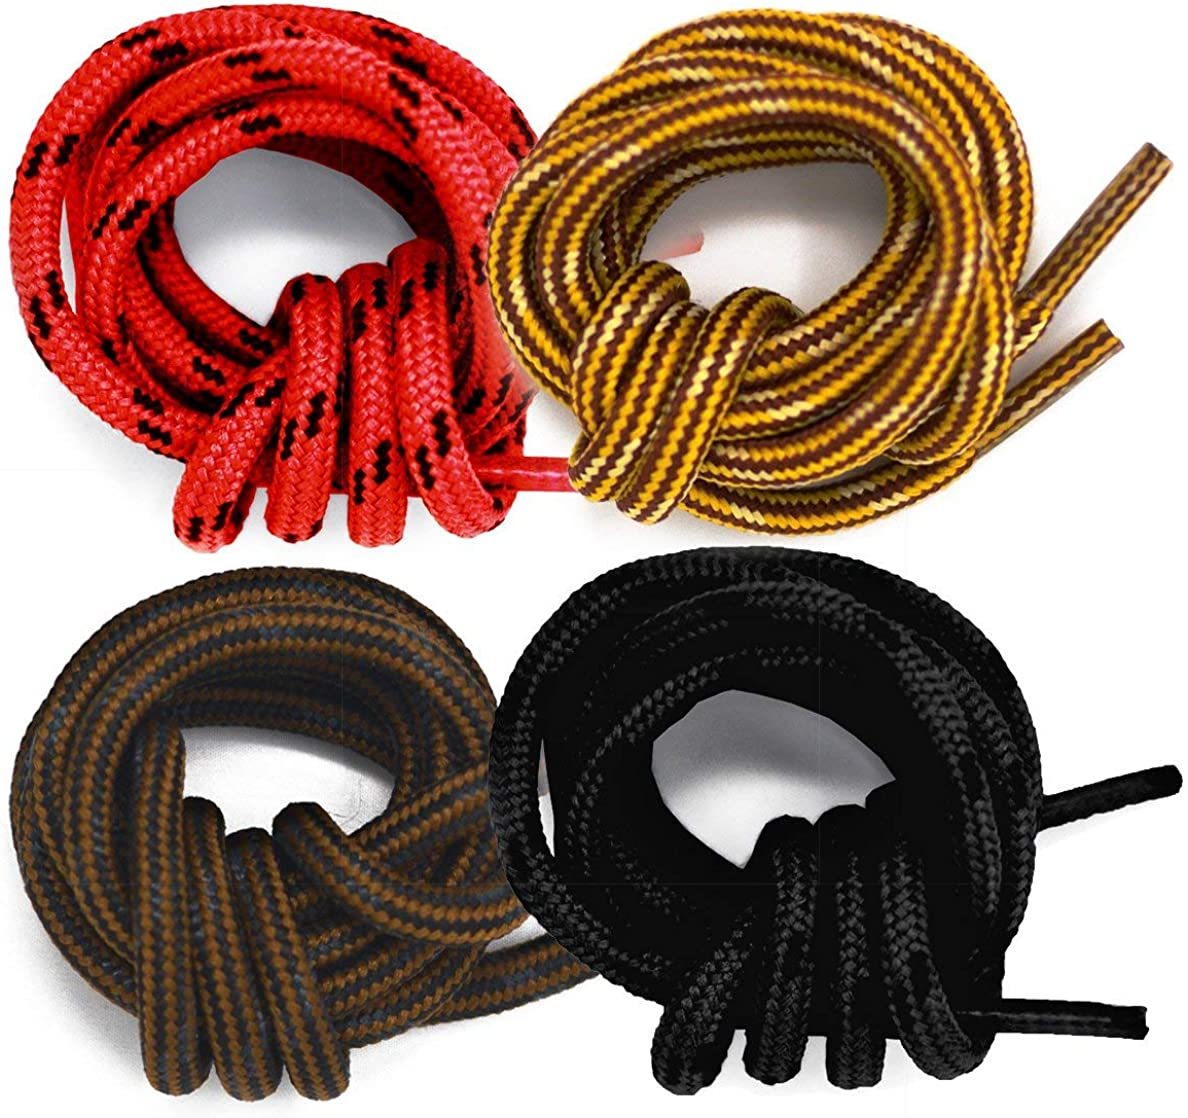 Honey Badger Work Boot Laces